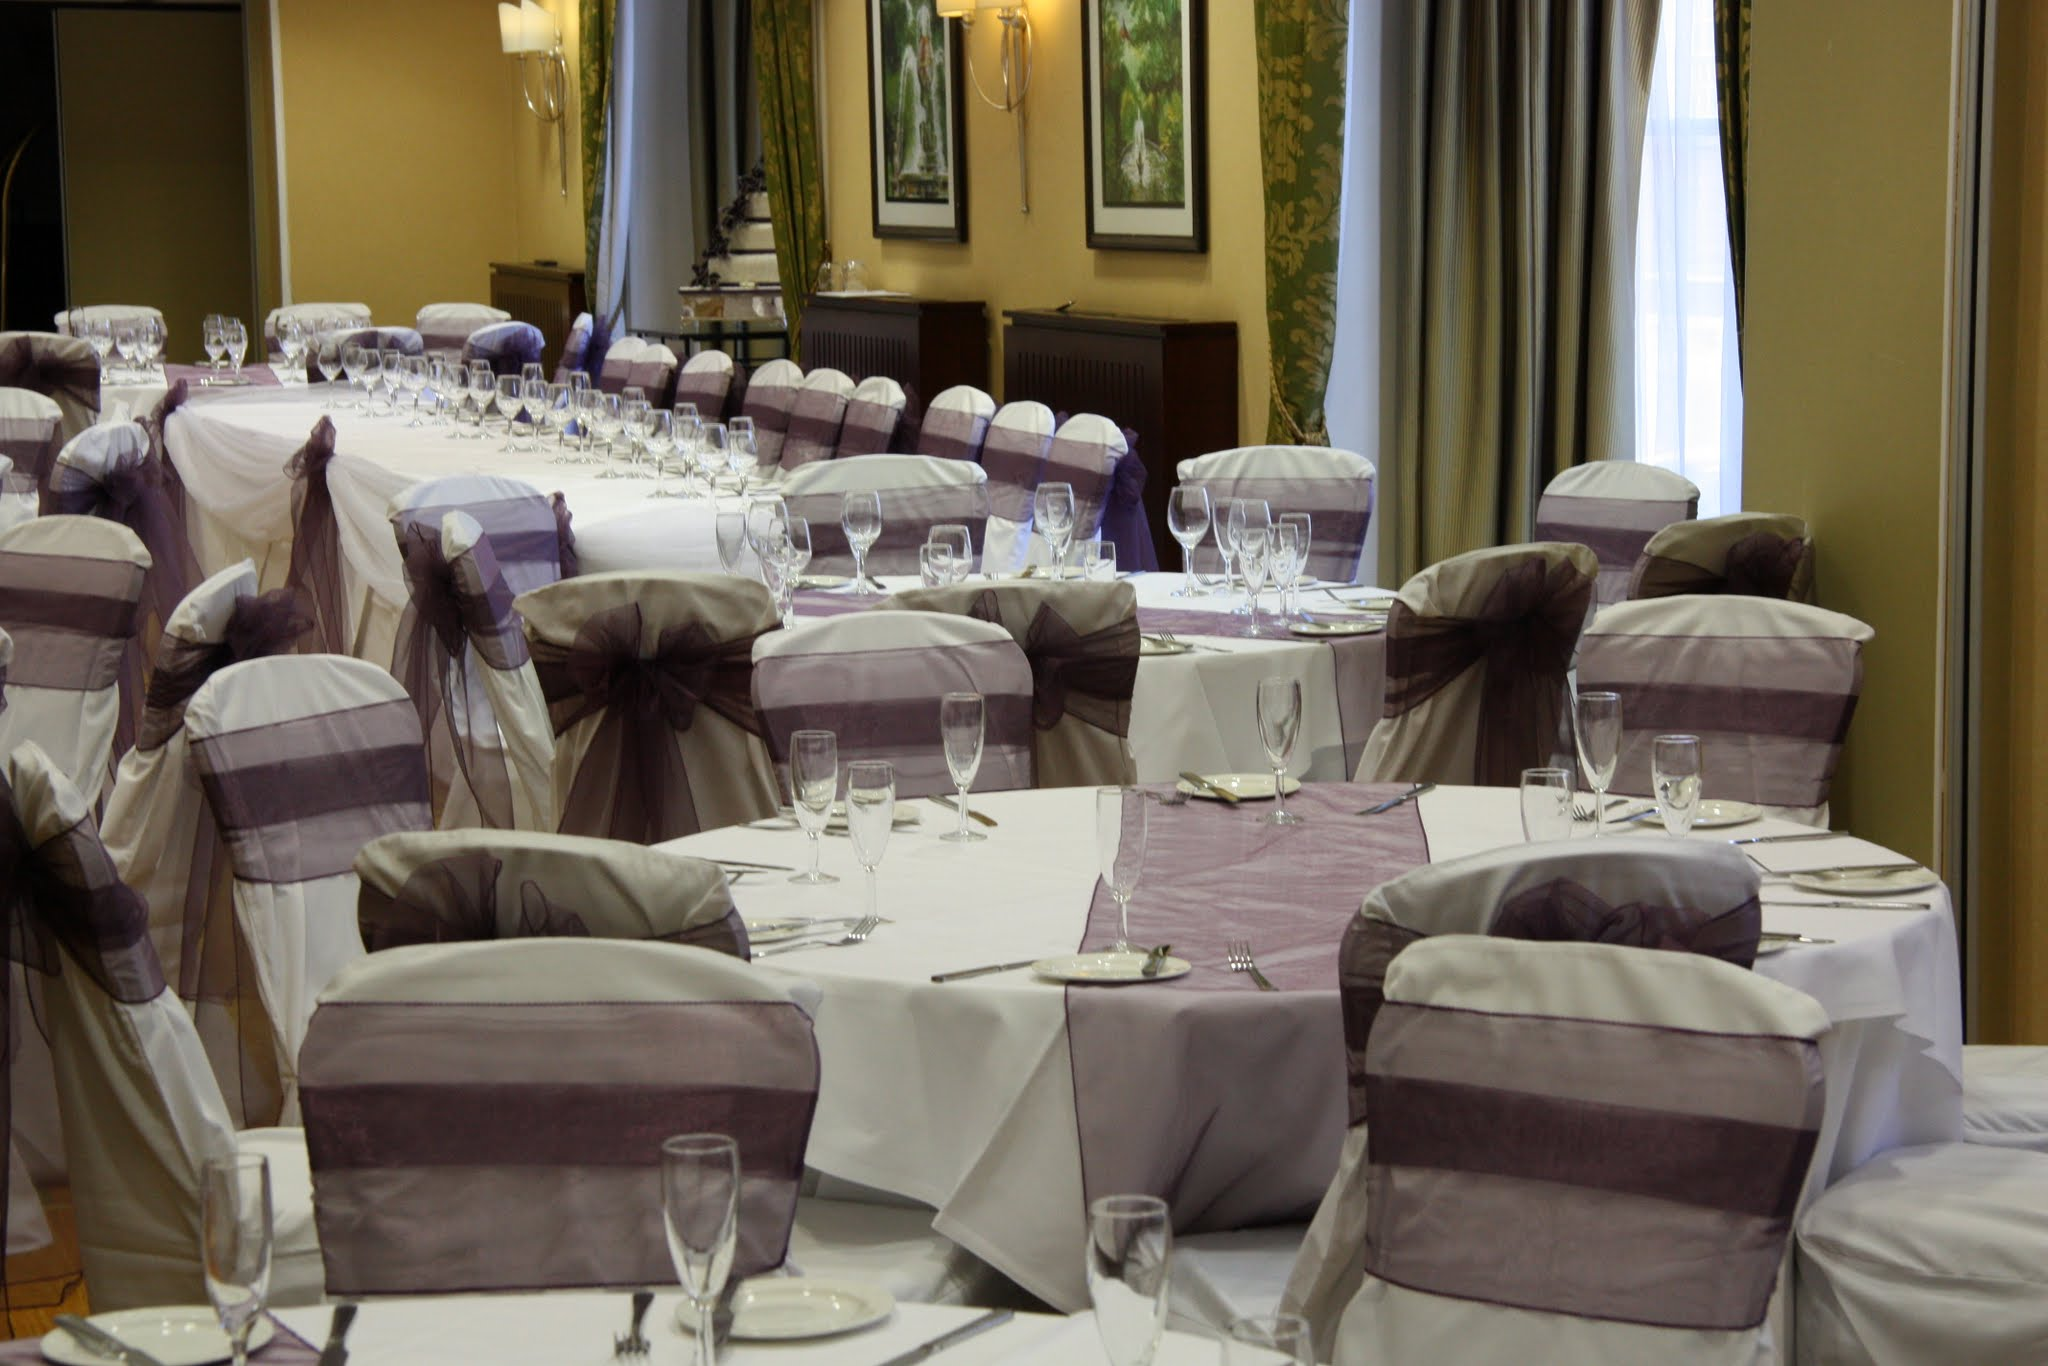 chair cover hire sunderland office alternatives posh covers bows chiavari chairs flower wall durham marriott